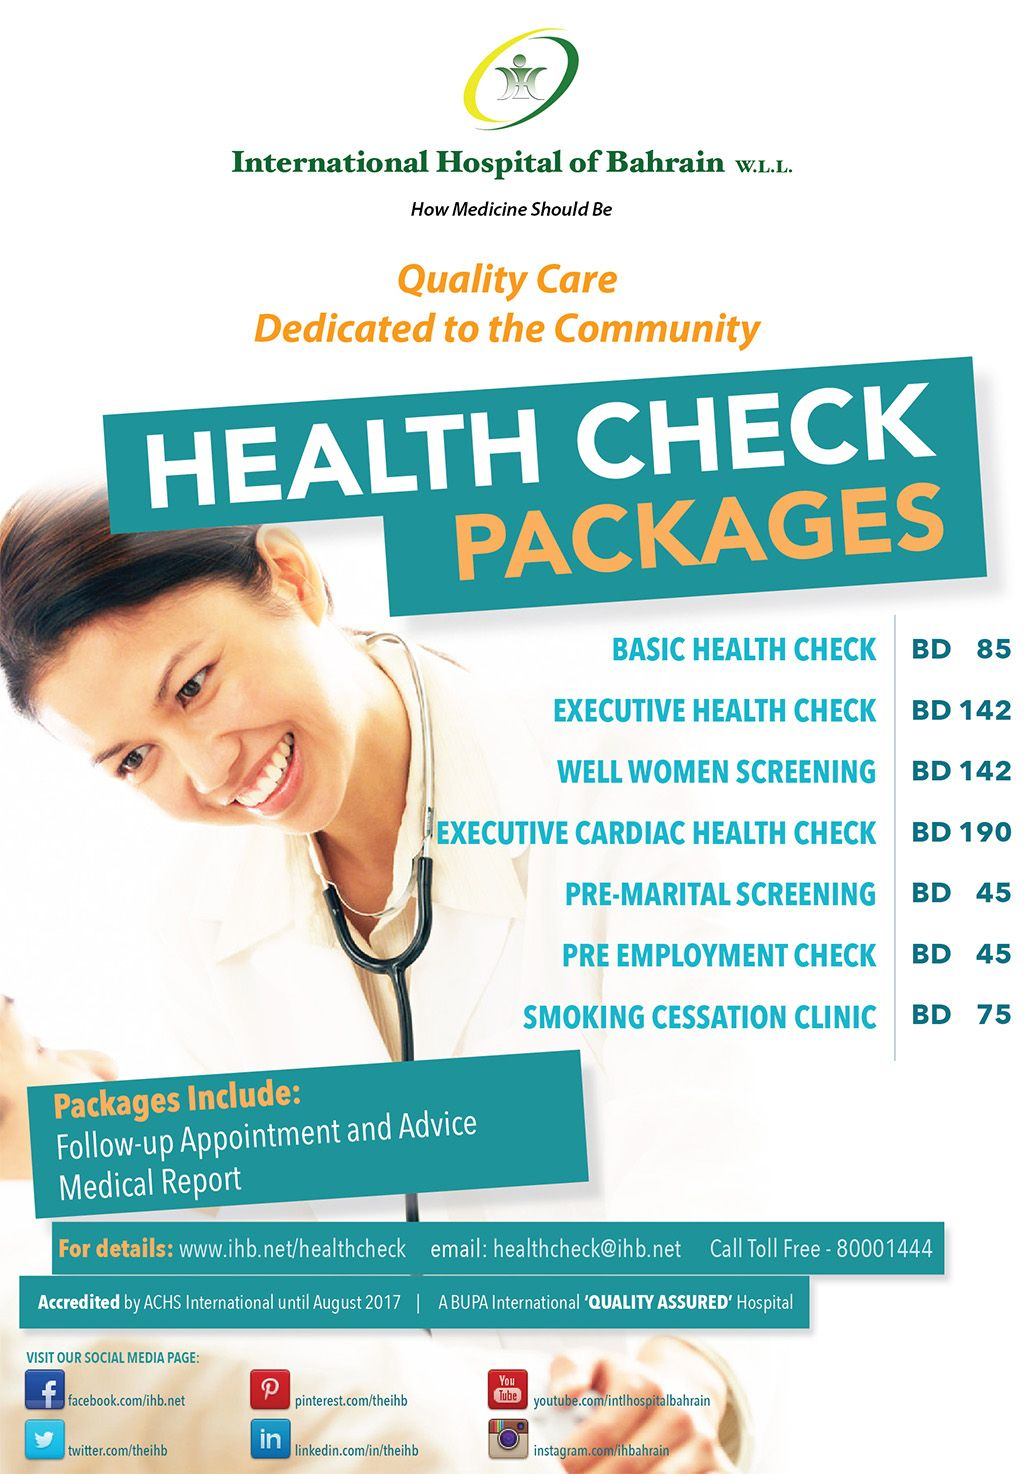 Wellness Clinic At International Hospital Of Bahrain Offers Health Check Packages To Suit Your Specific Needs Health Check Wellness Clinic Health Promotion